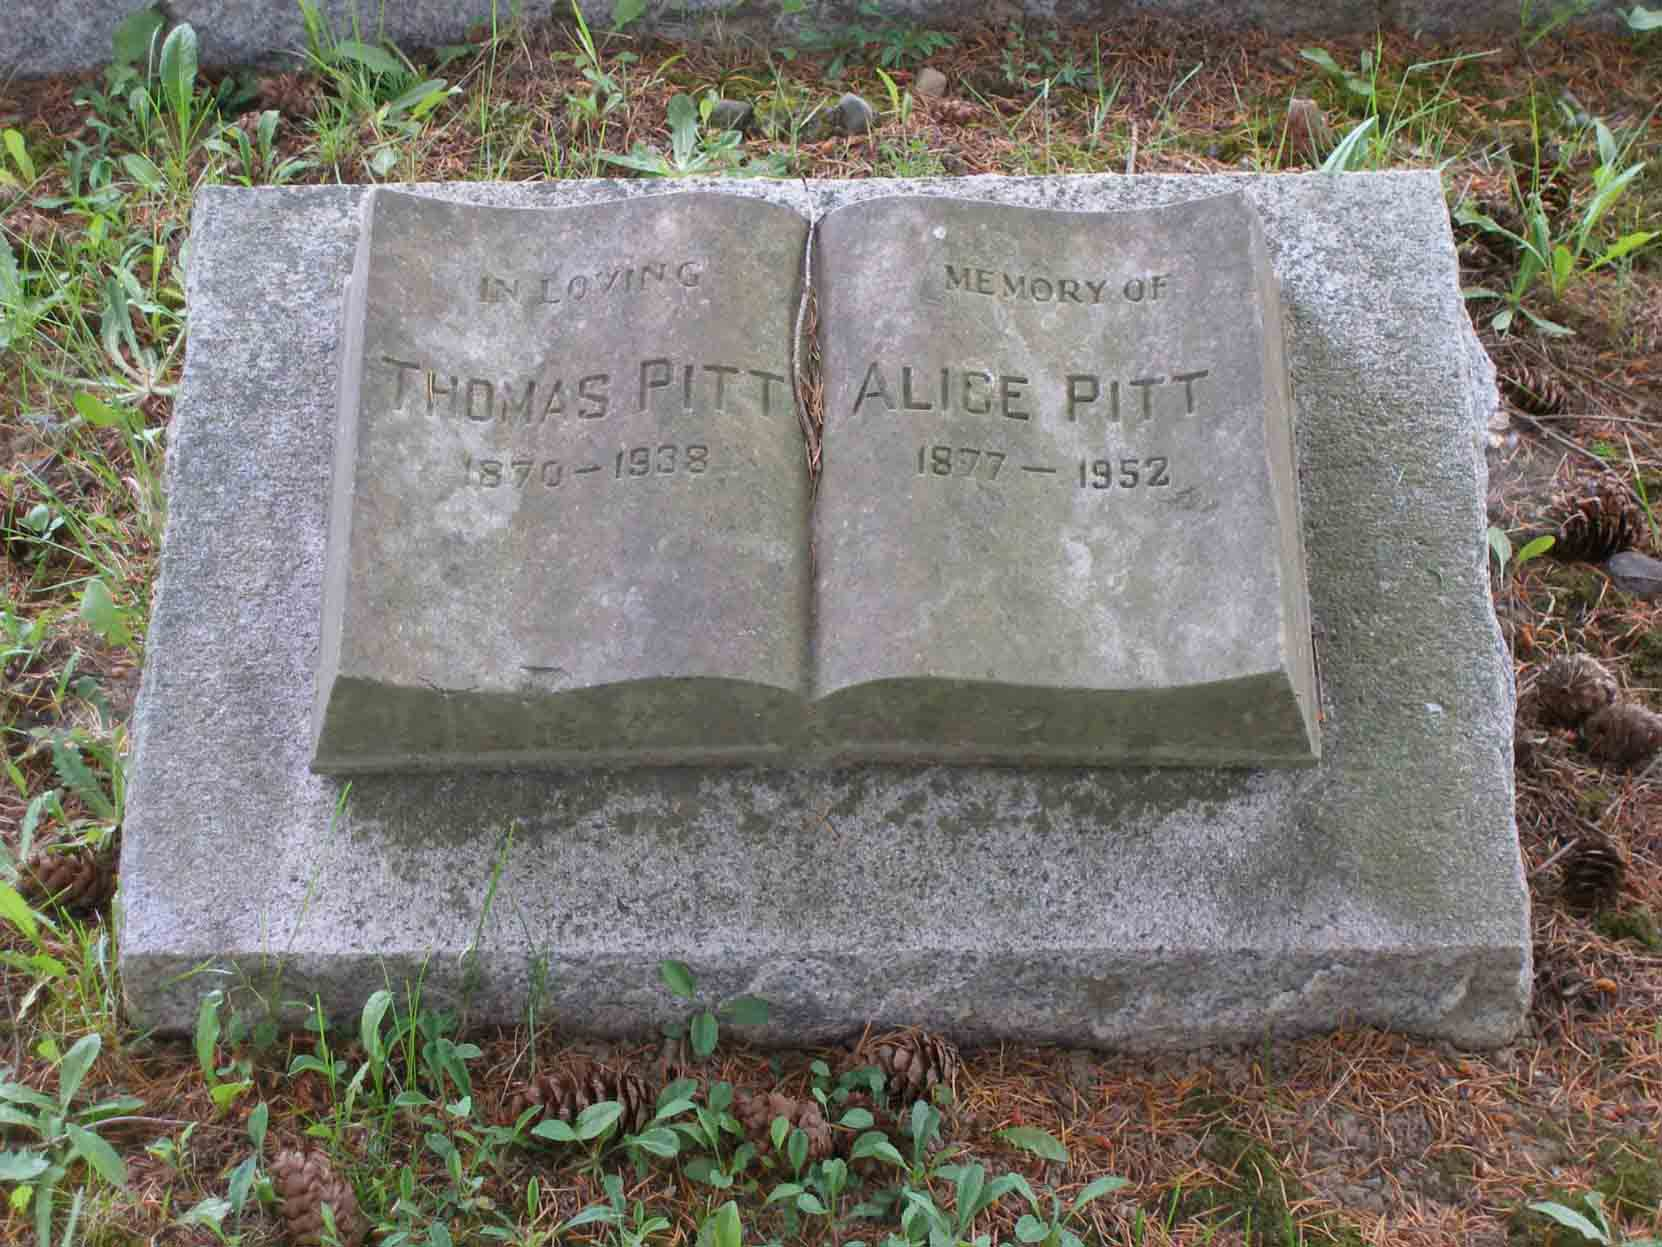 Headstone on the grave of Thomas Pitt and his wife, Alice Pitt, Mountain View Cemetery, North Cowichan, B.C.